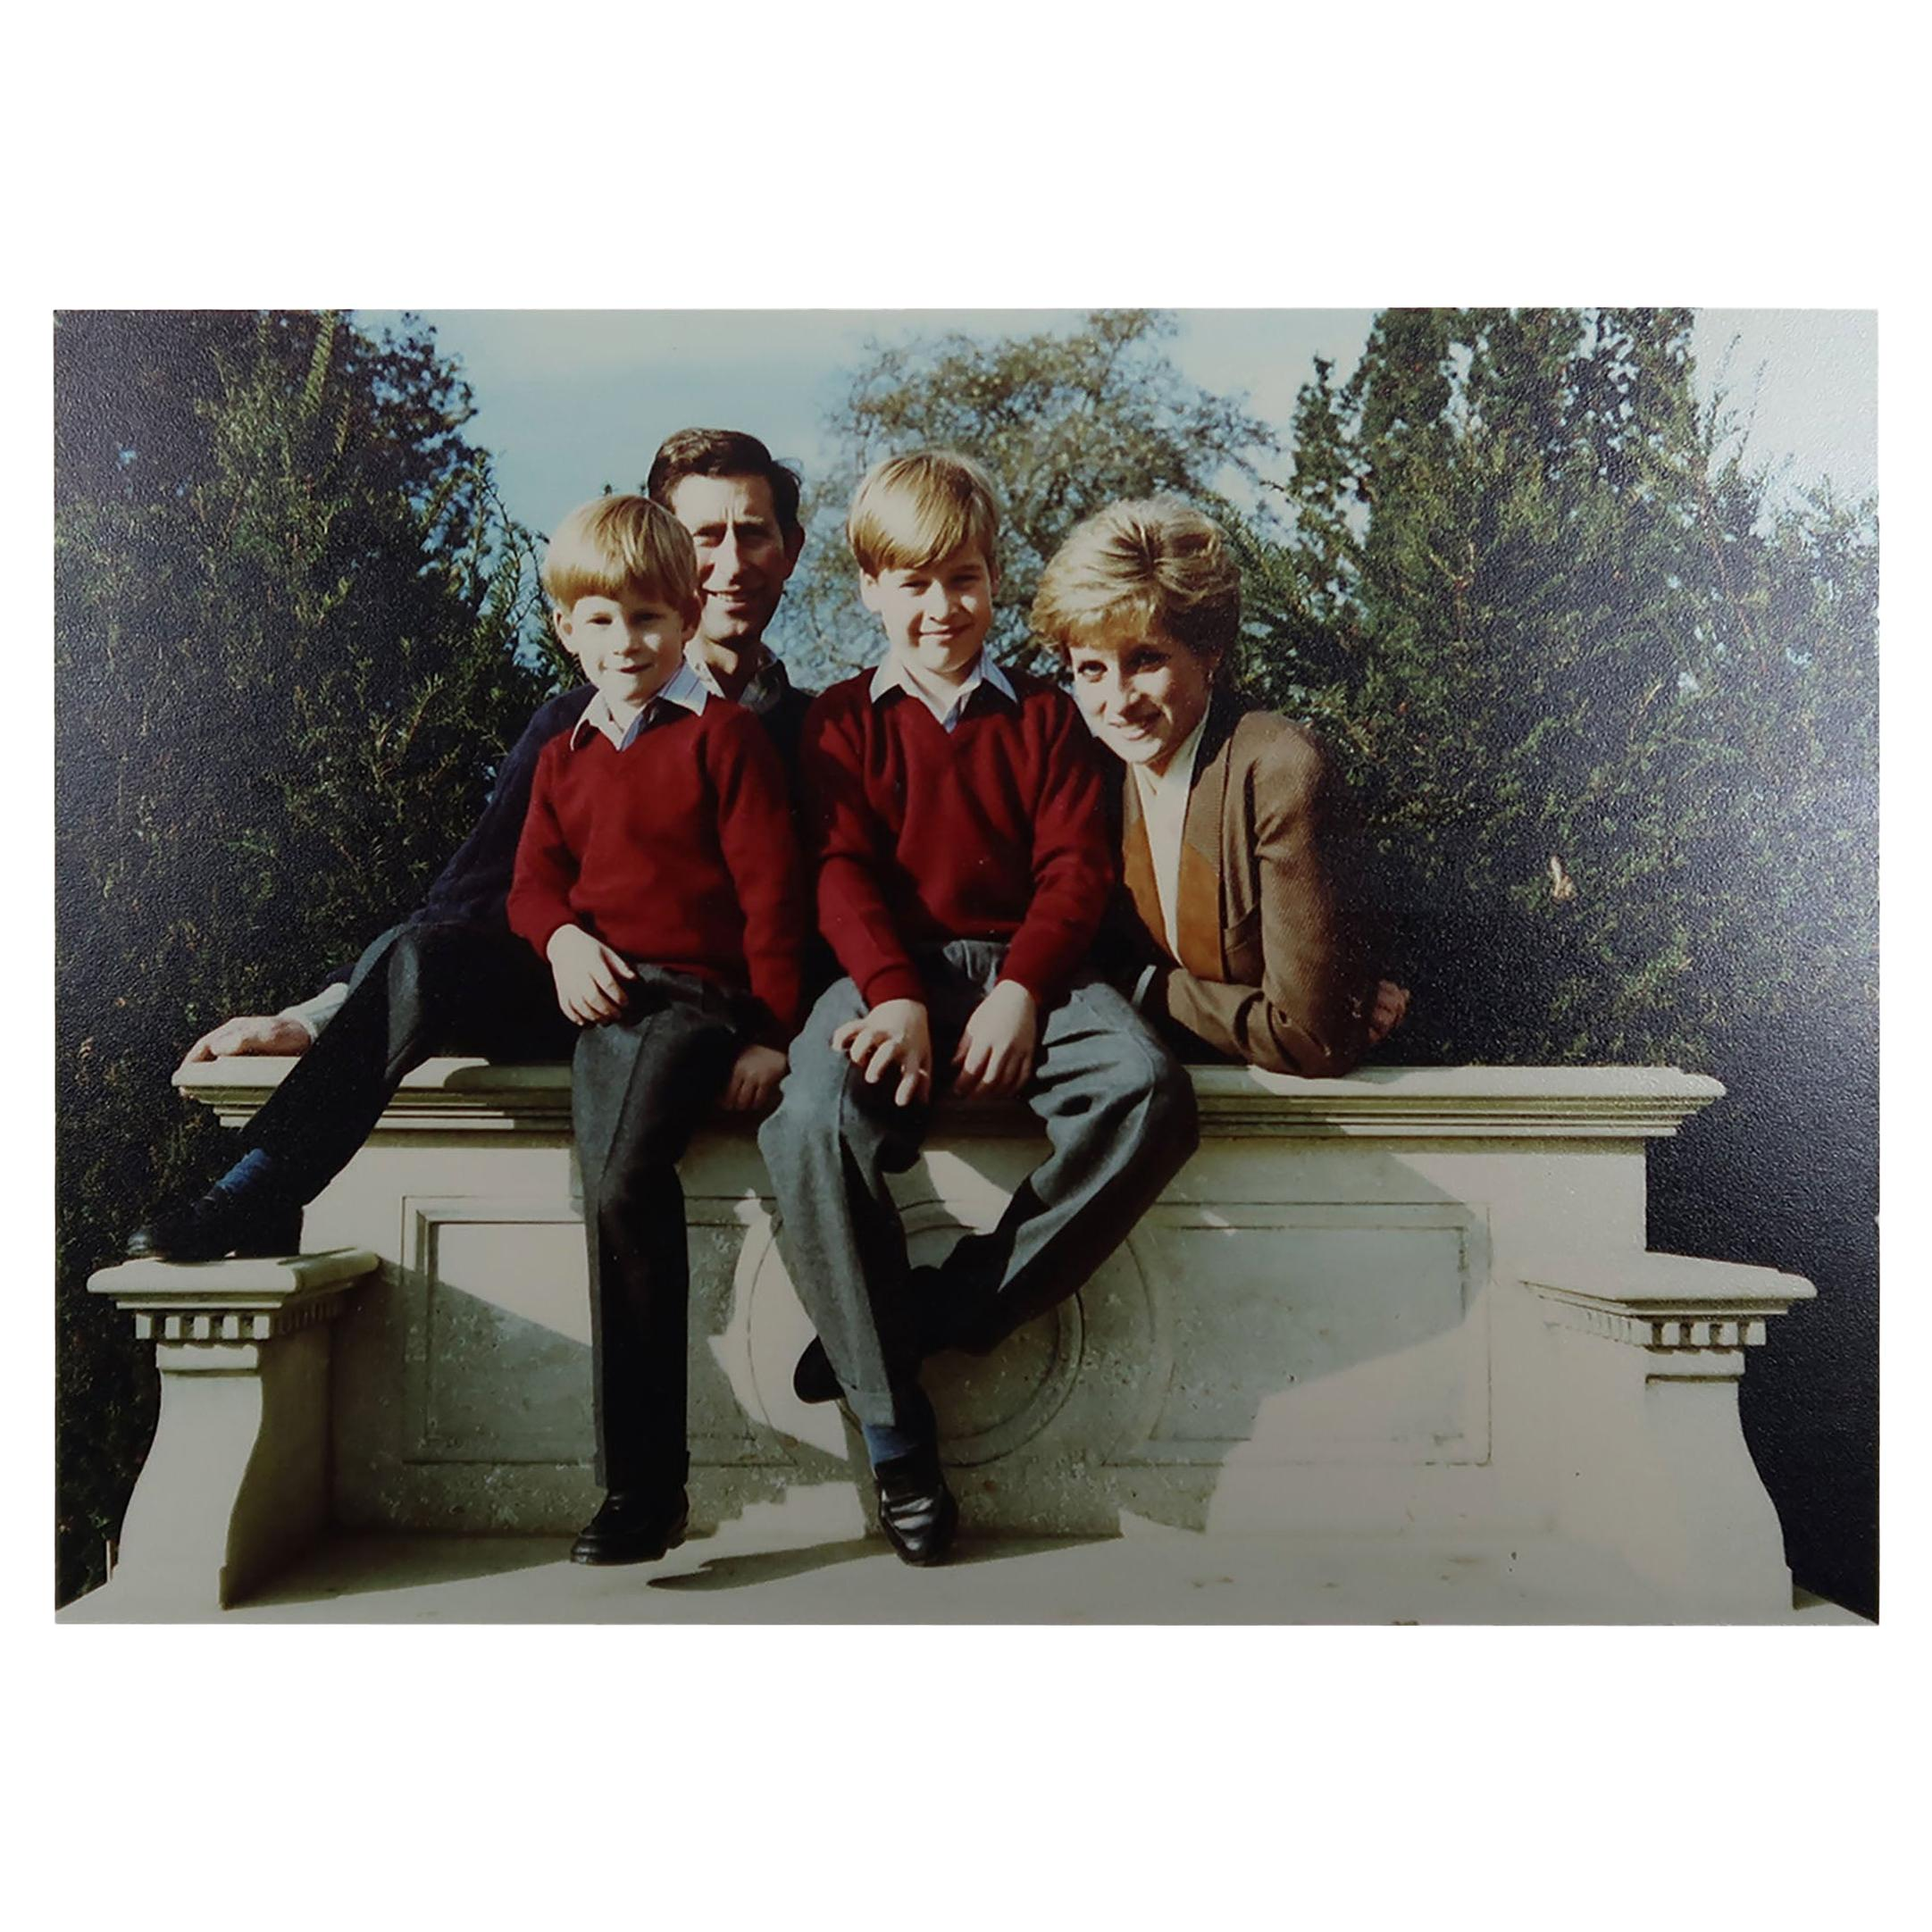 Signed Christmas Card / Photograph from Prince Charles and Princess Diana, 1990